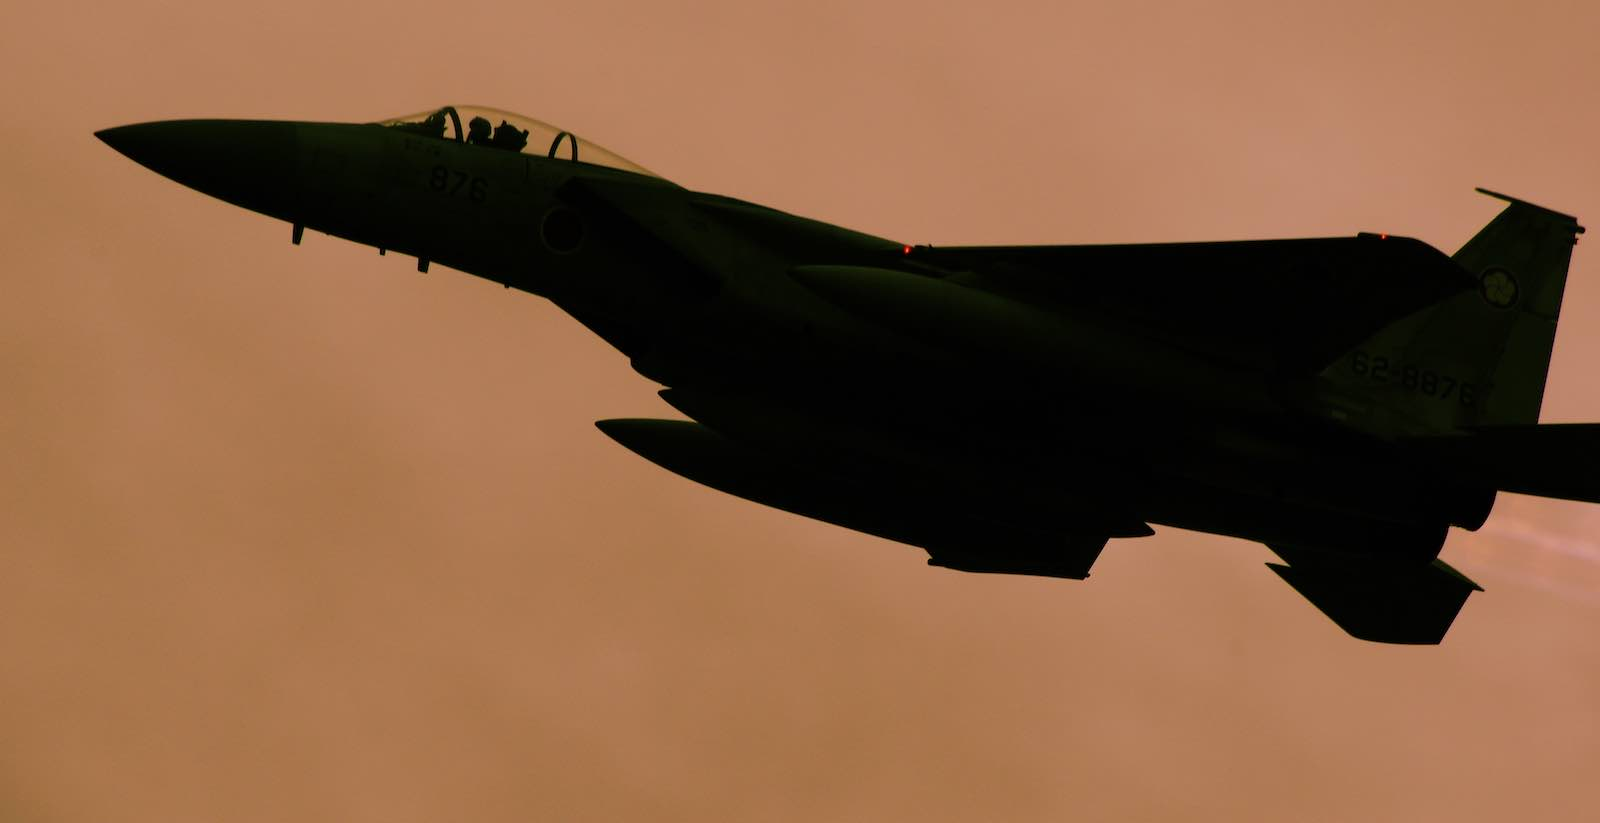 The F-15J is well suited for air policing tasks, having a fast cruise speed, a good range and endurance (Photo: A Shino/Flickr)